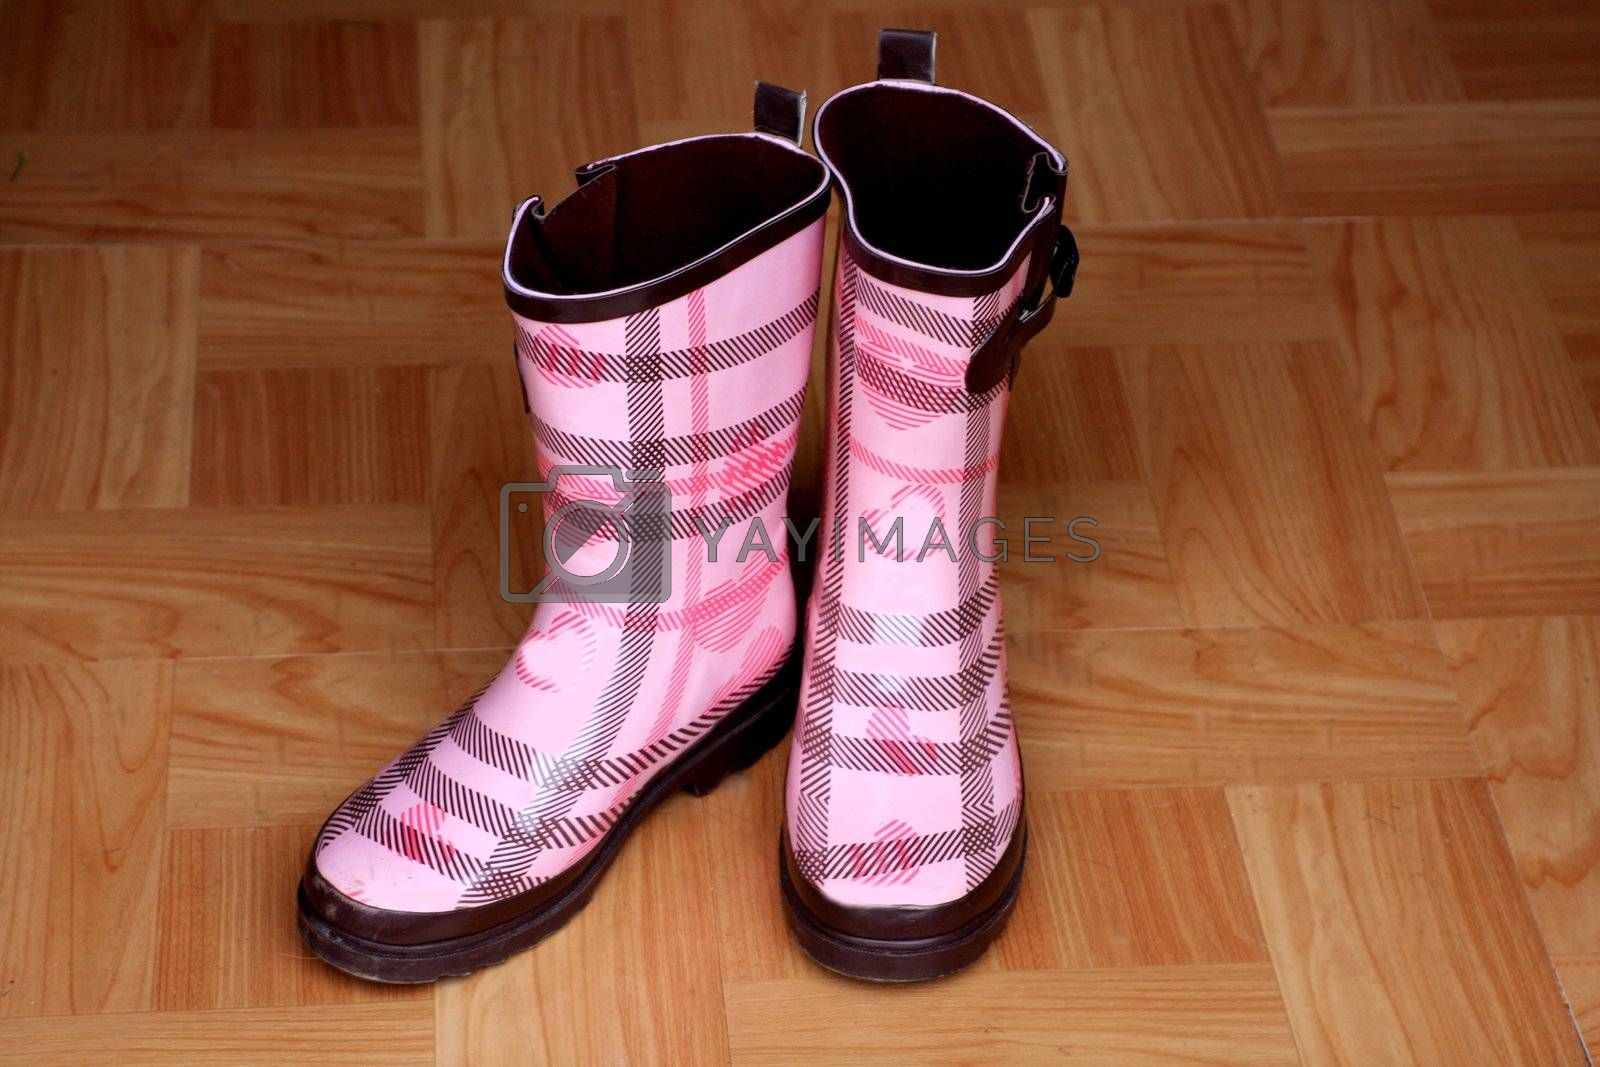 Adorable pink rain boots on wooden floor next to door. Women's footwear for the rainy and cold season. Outdoor boots for rain.